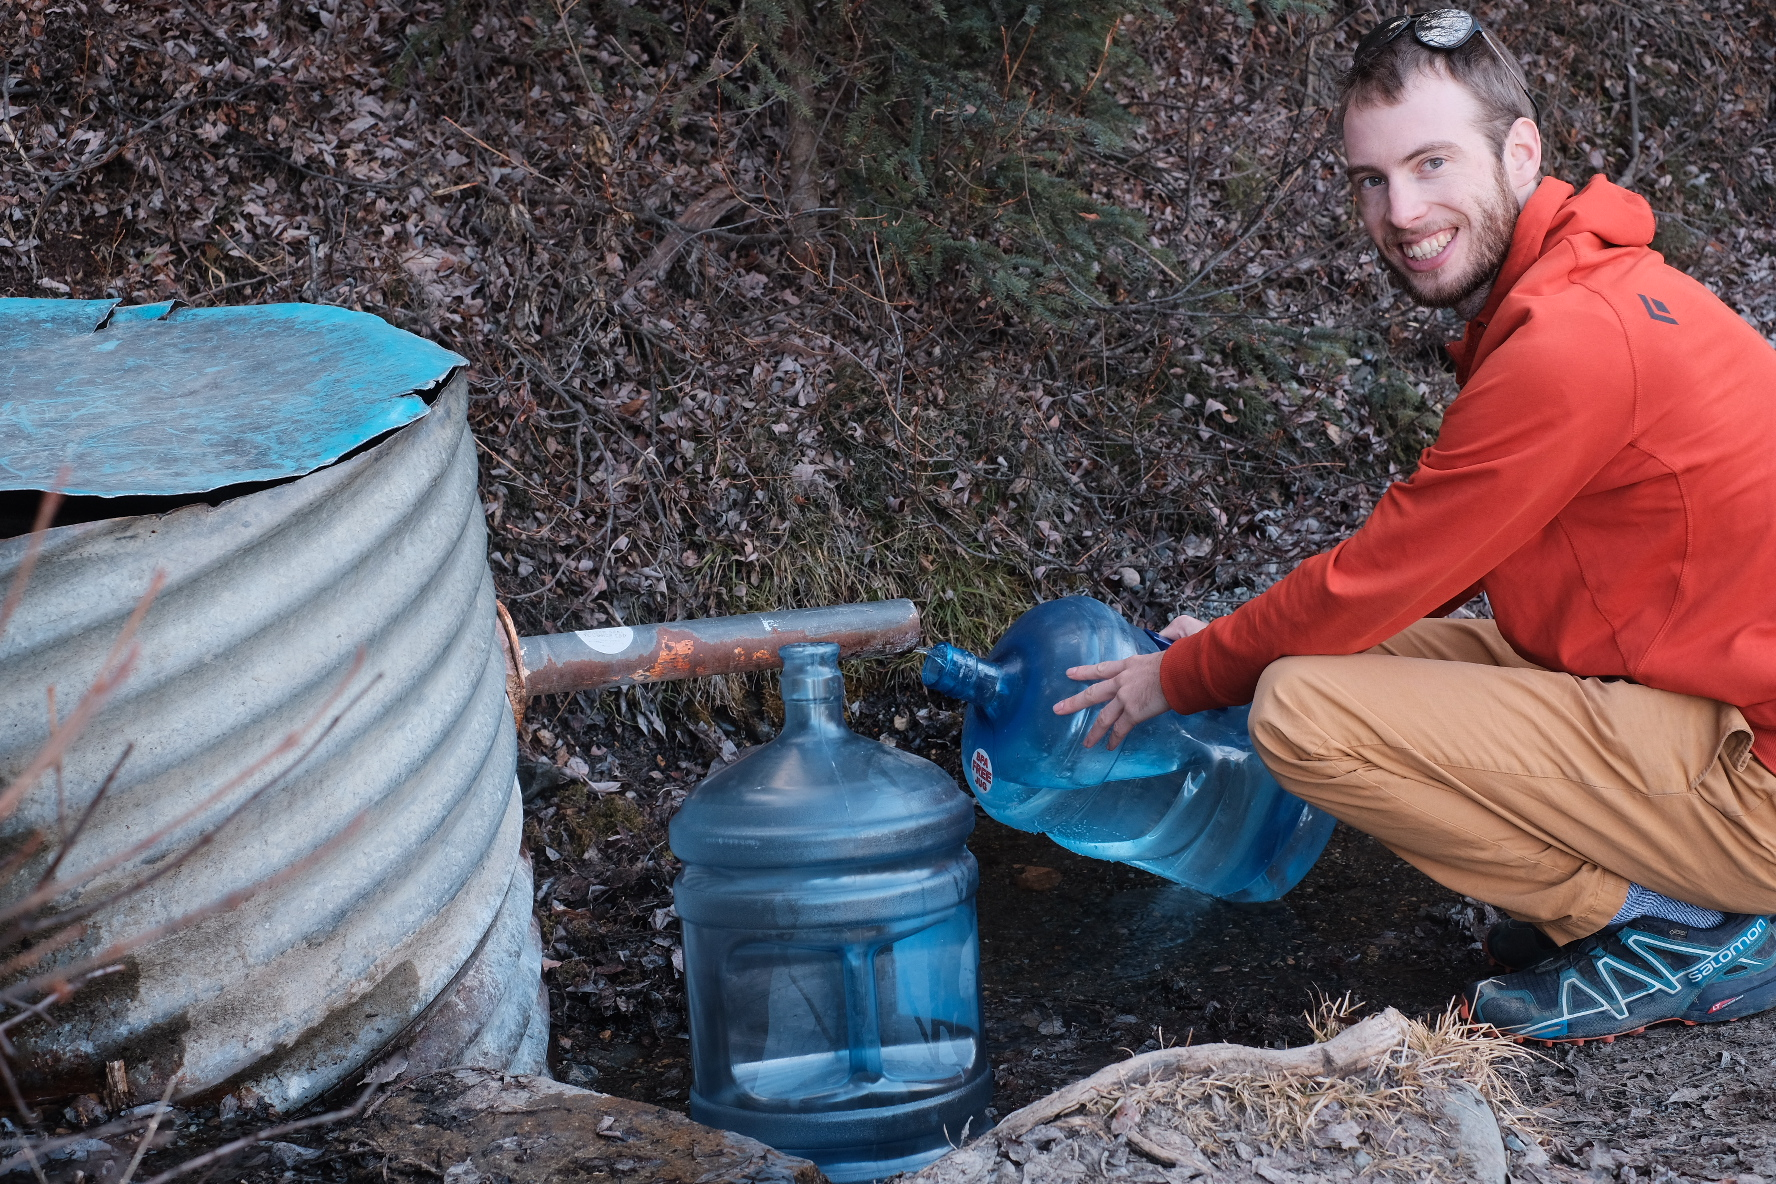 Filling blue water jug at a creek. Such is the hippie life.